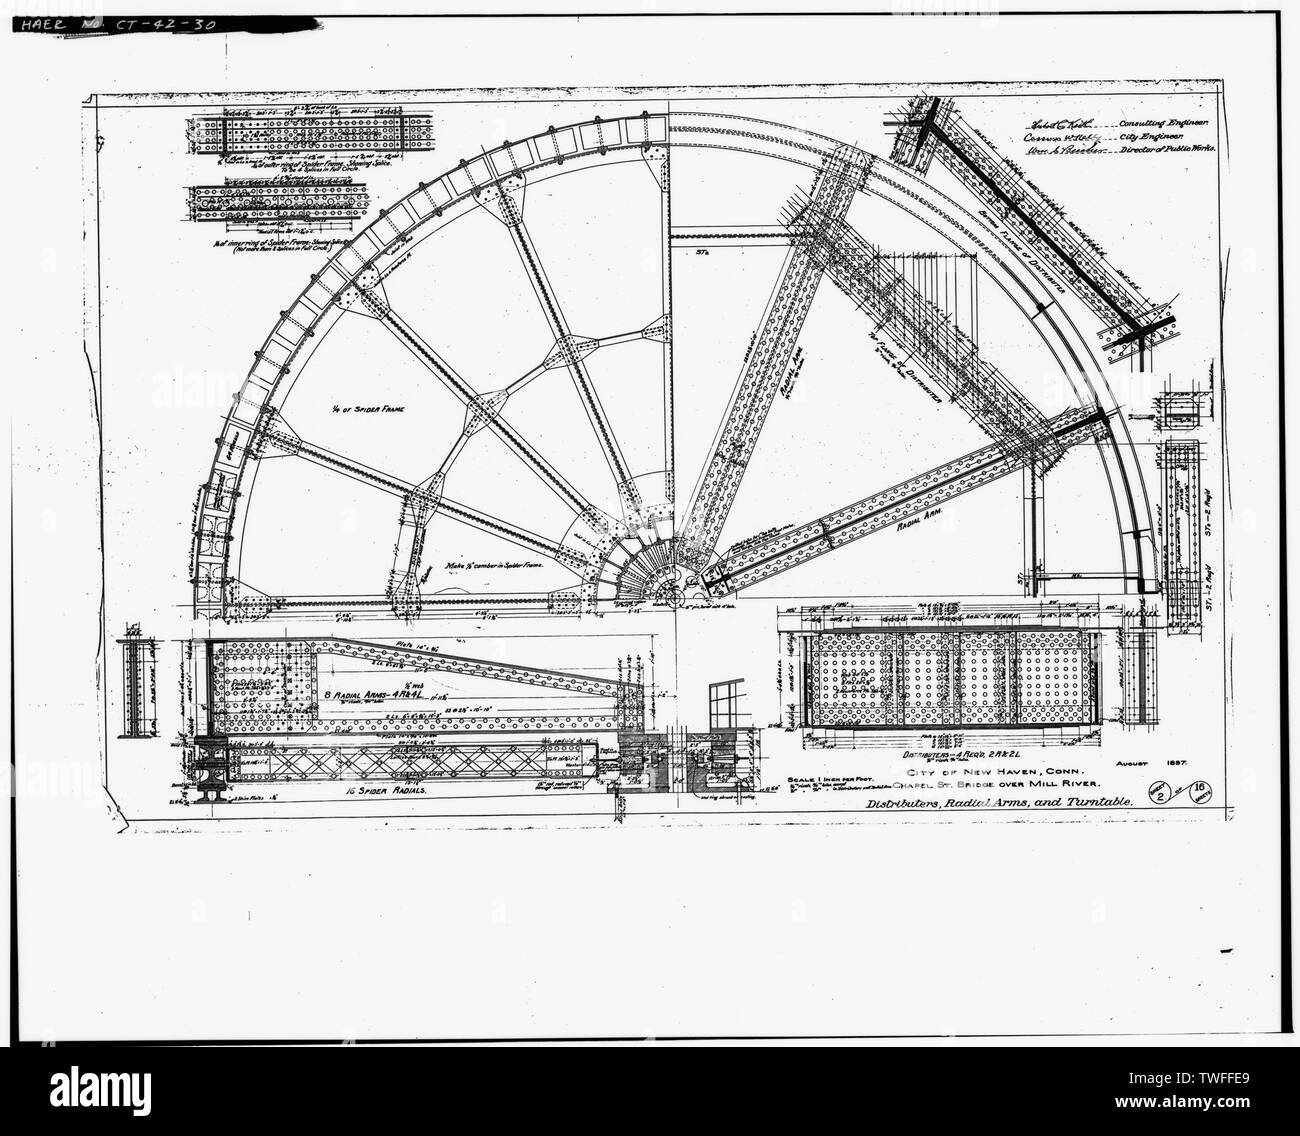 PLAN SHEET - DISTRIBUTERS, RADIAL ARMS AND TURNTABLE (1897) - Chapel Street Swing Bridge, Spanning Mill River on Chapel Street, New Haven, New Haven County, CT - Stock Image